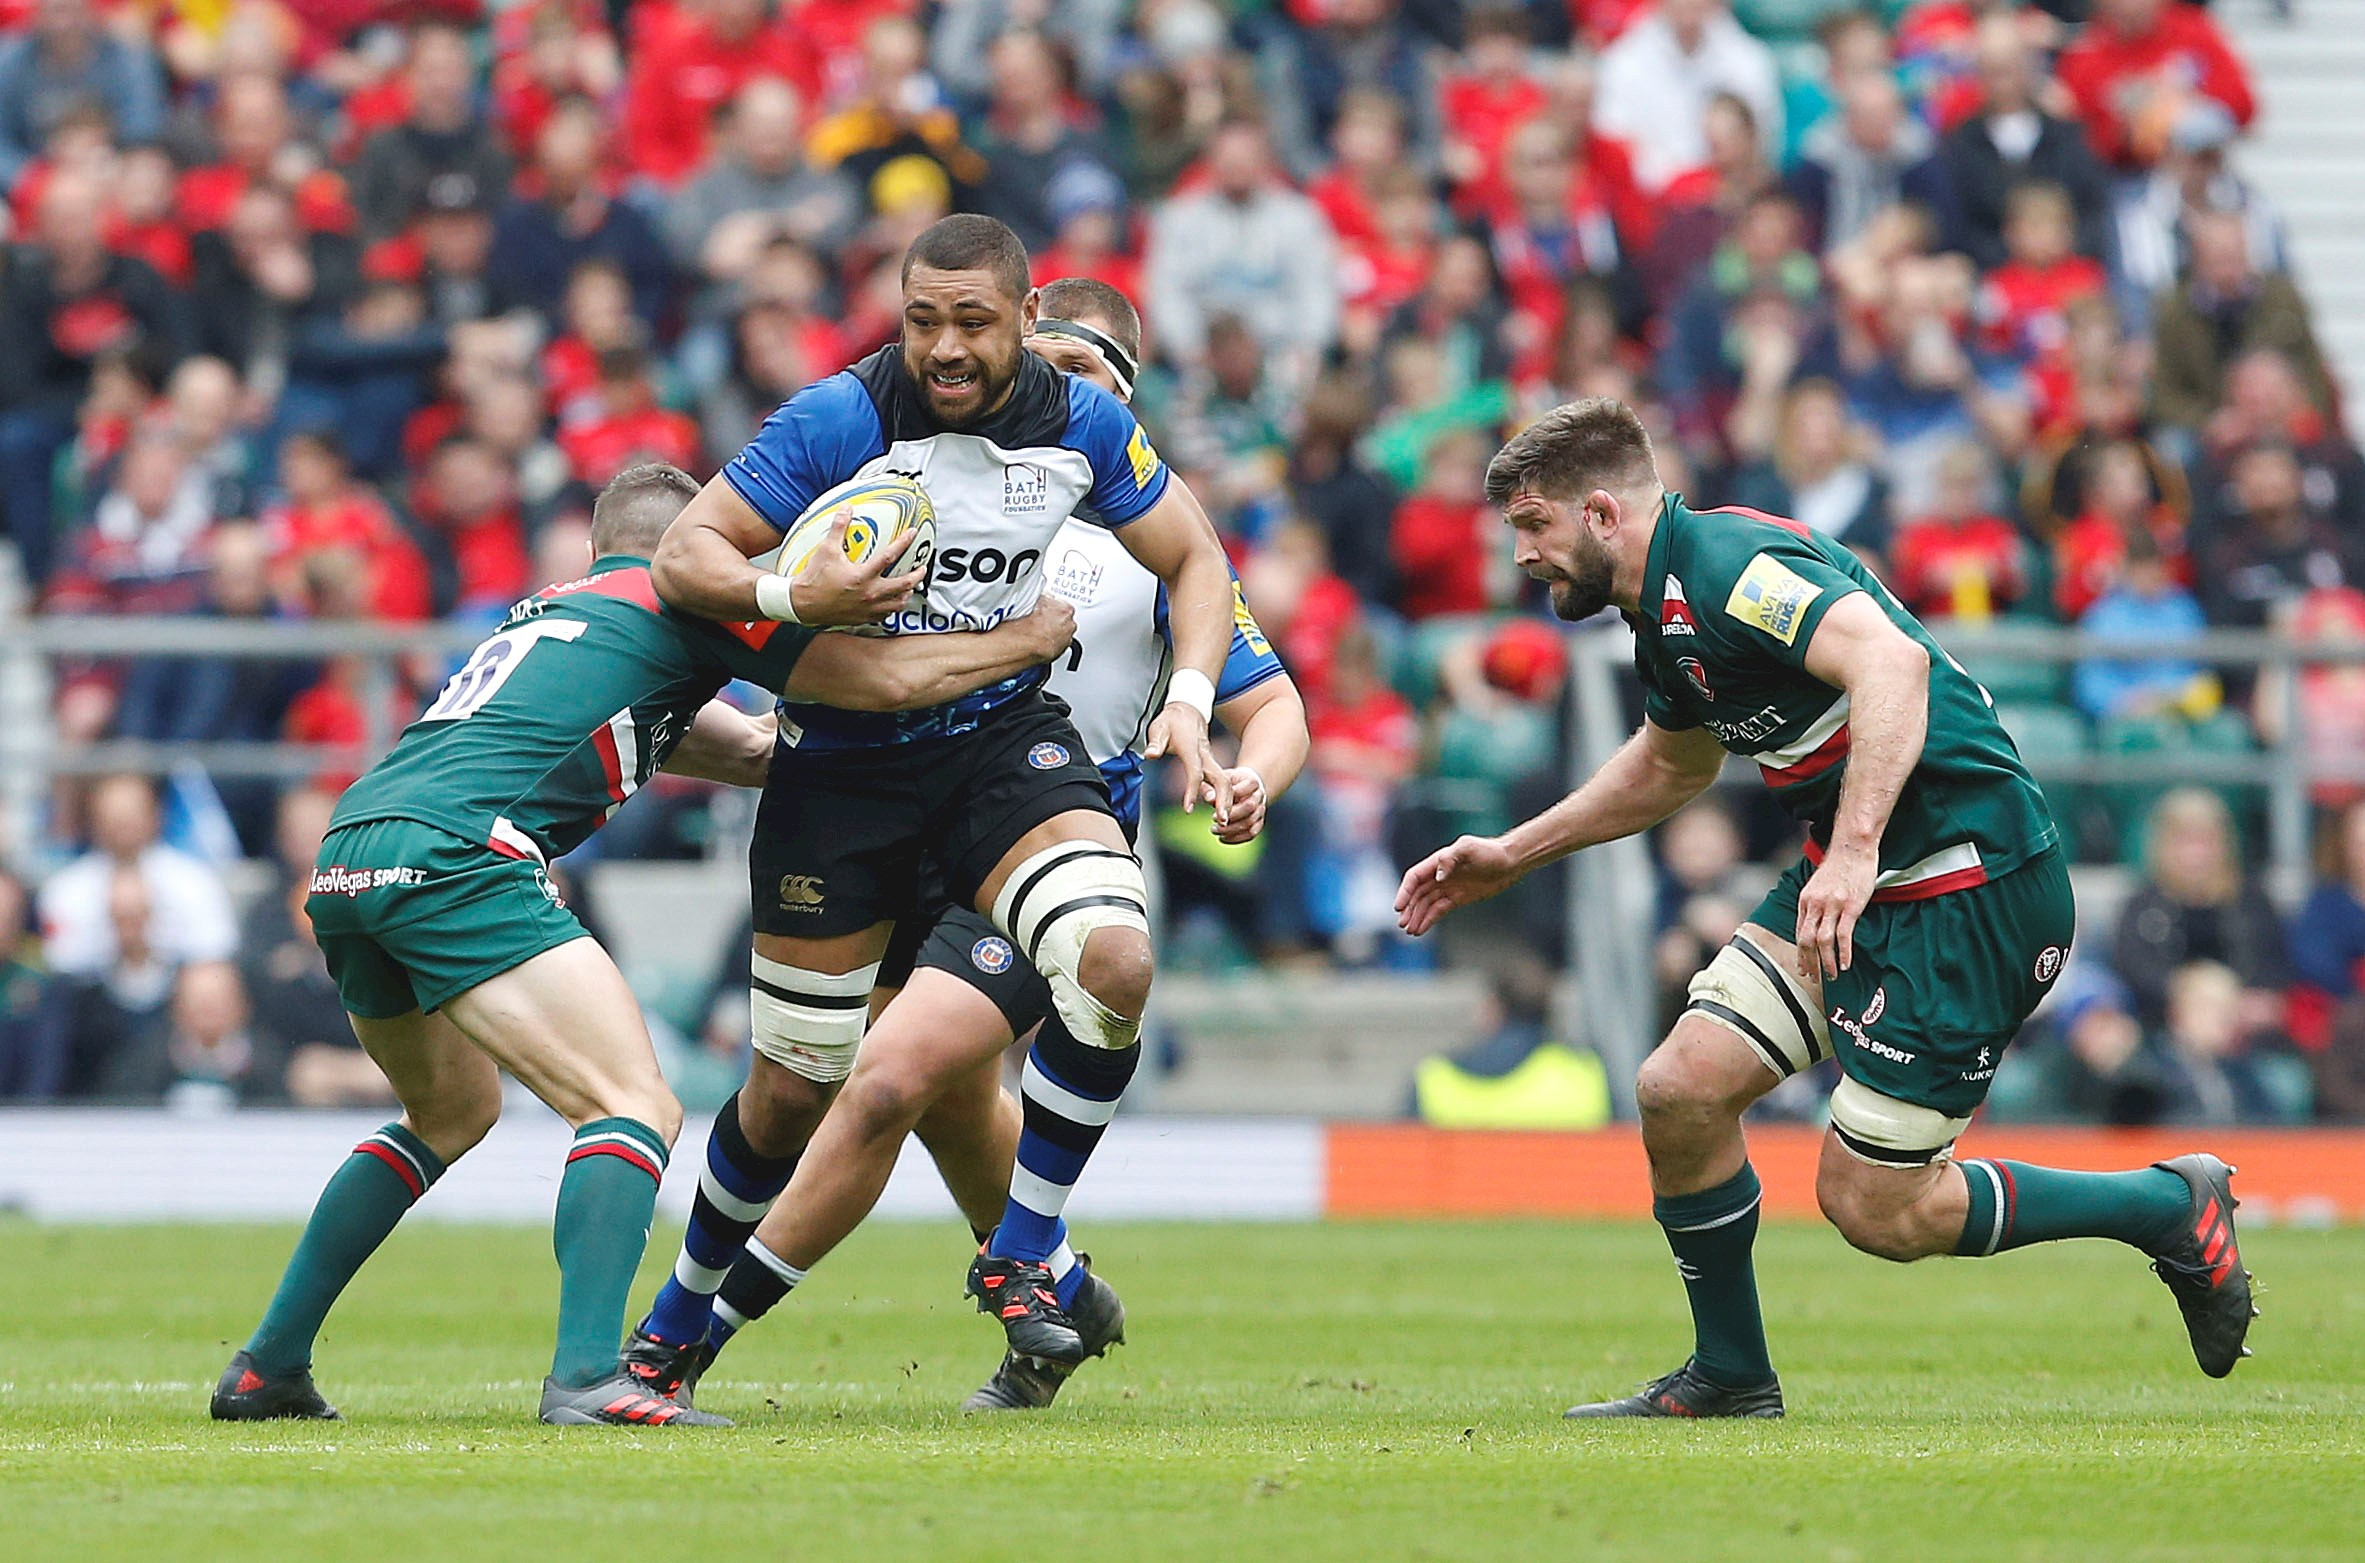 Leicester Tigers triumph over Bath Rugby at Twickenham